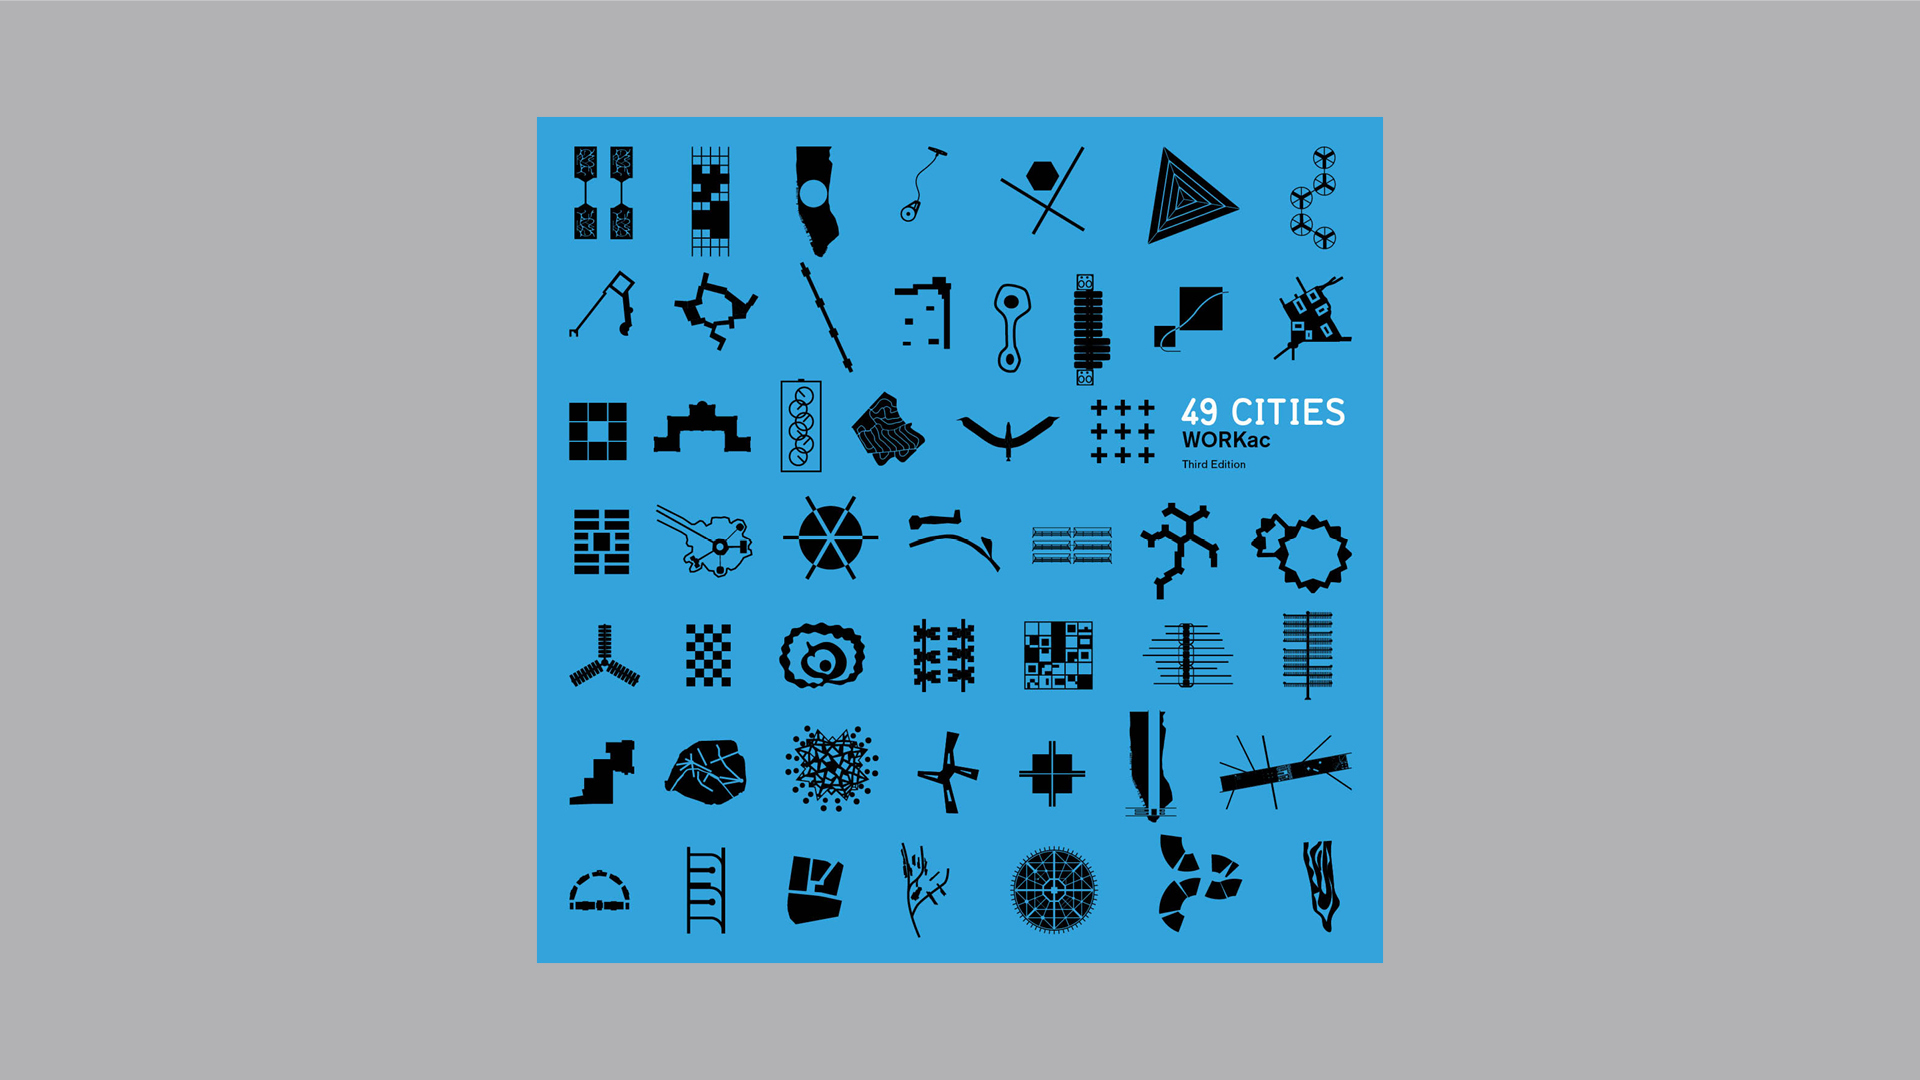 49 Cities by WORKac Opens Kickstarter for its 3rd Edition Deluxe Reprint